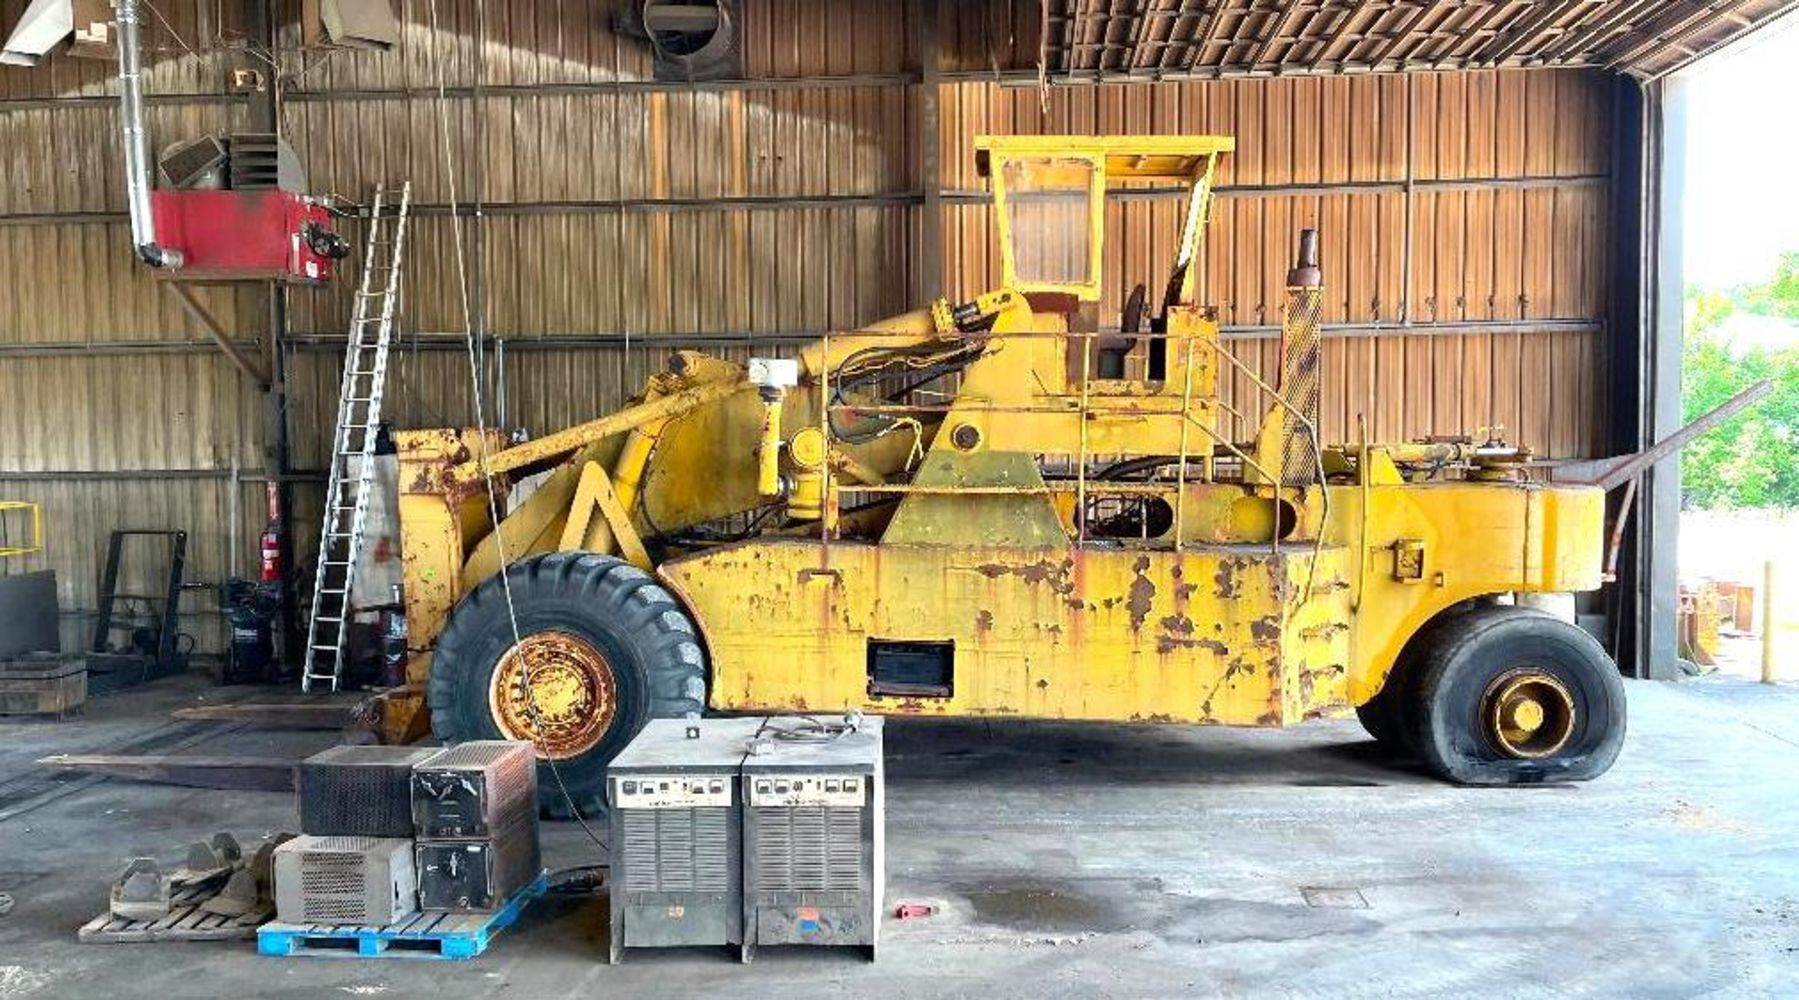 Landfill Equipment Online Auction (For Benefit Of Secured Creditor)